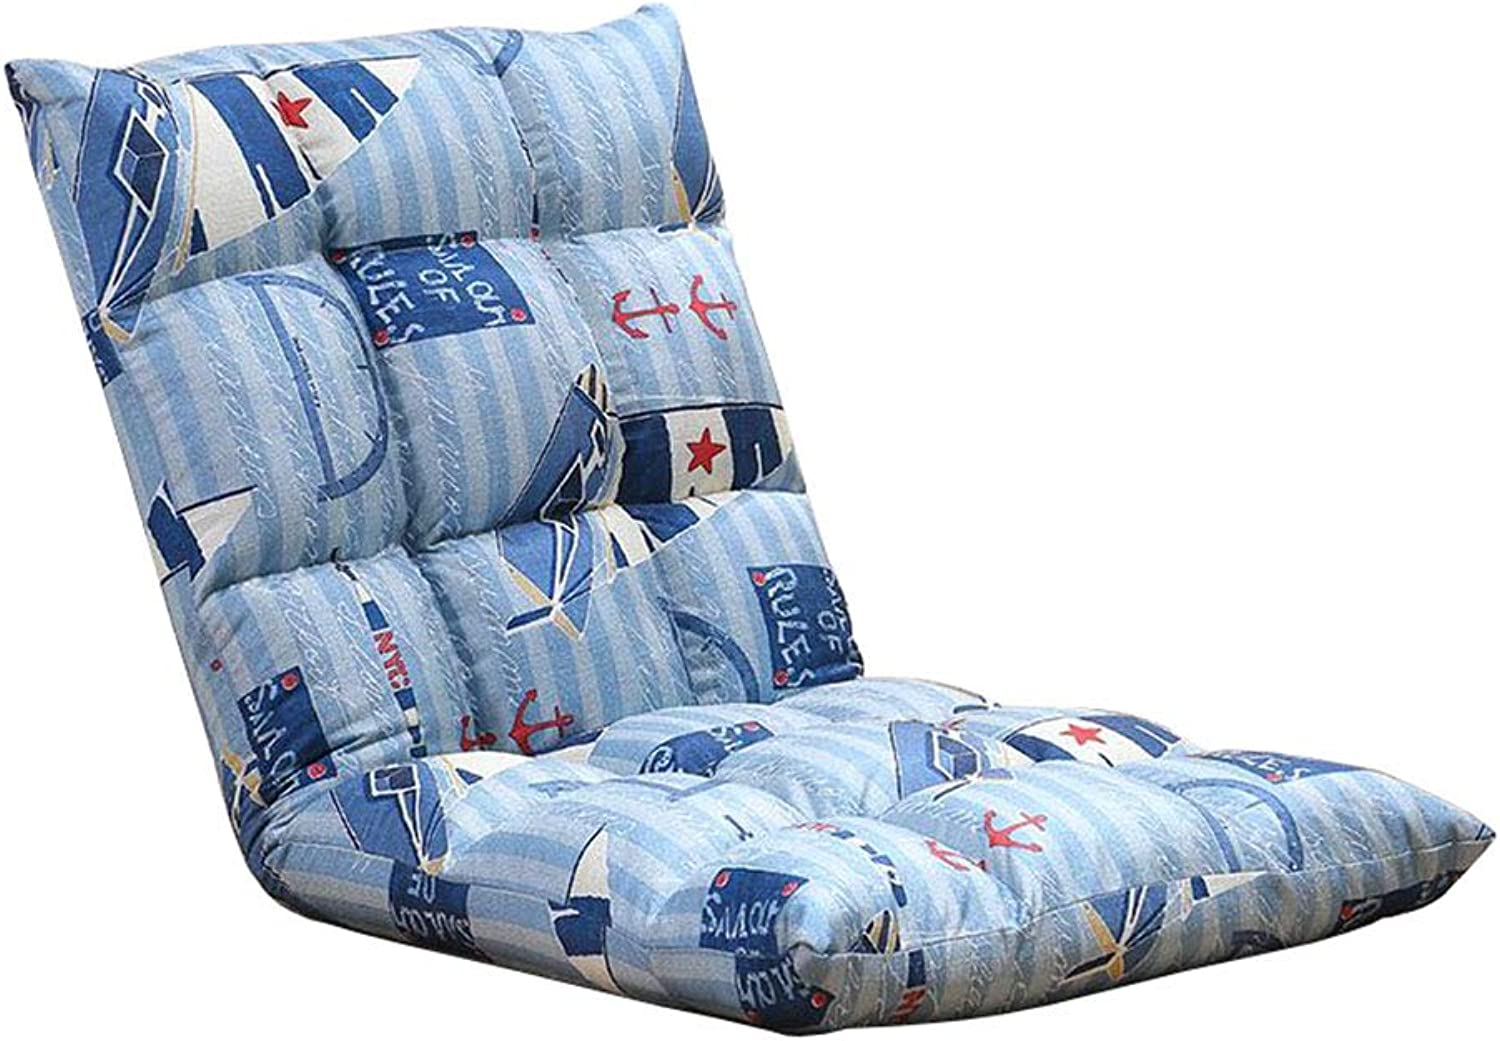 Lazy Lounge Sofa Folding Floor Chair Adjustable Backrest Seat Chairs Gaming Couch Bay Window Indoor bluee Cotton Hemp